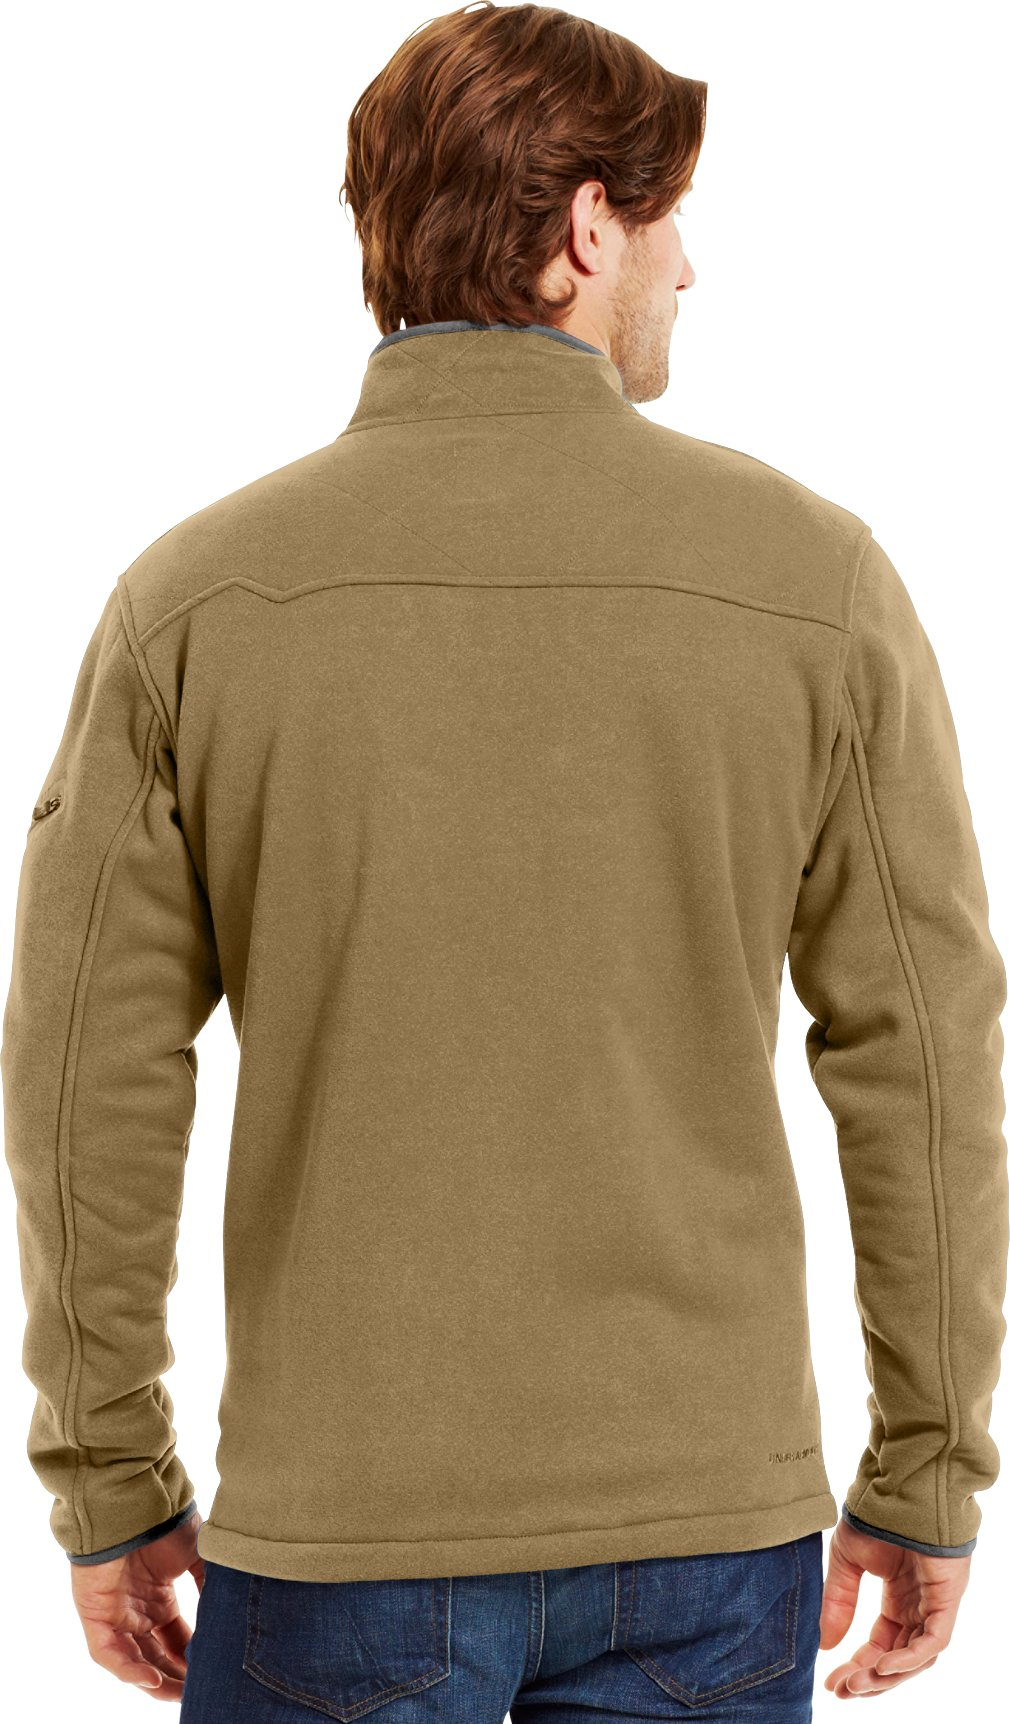 Men's Extreme ColdGear® Jacket, DEER HIDE, Back